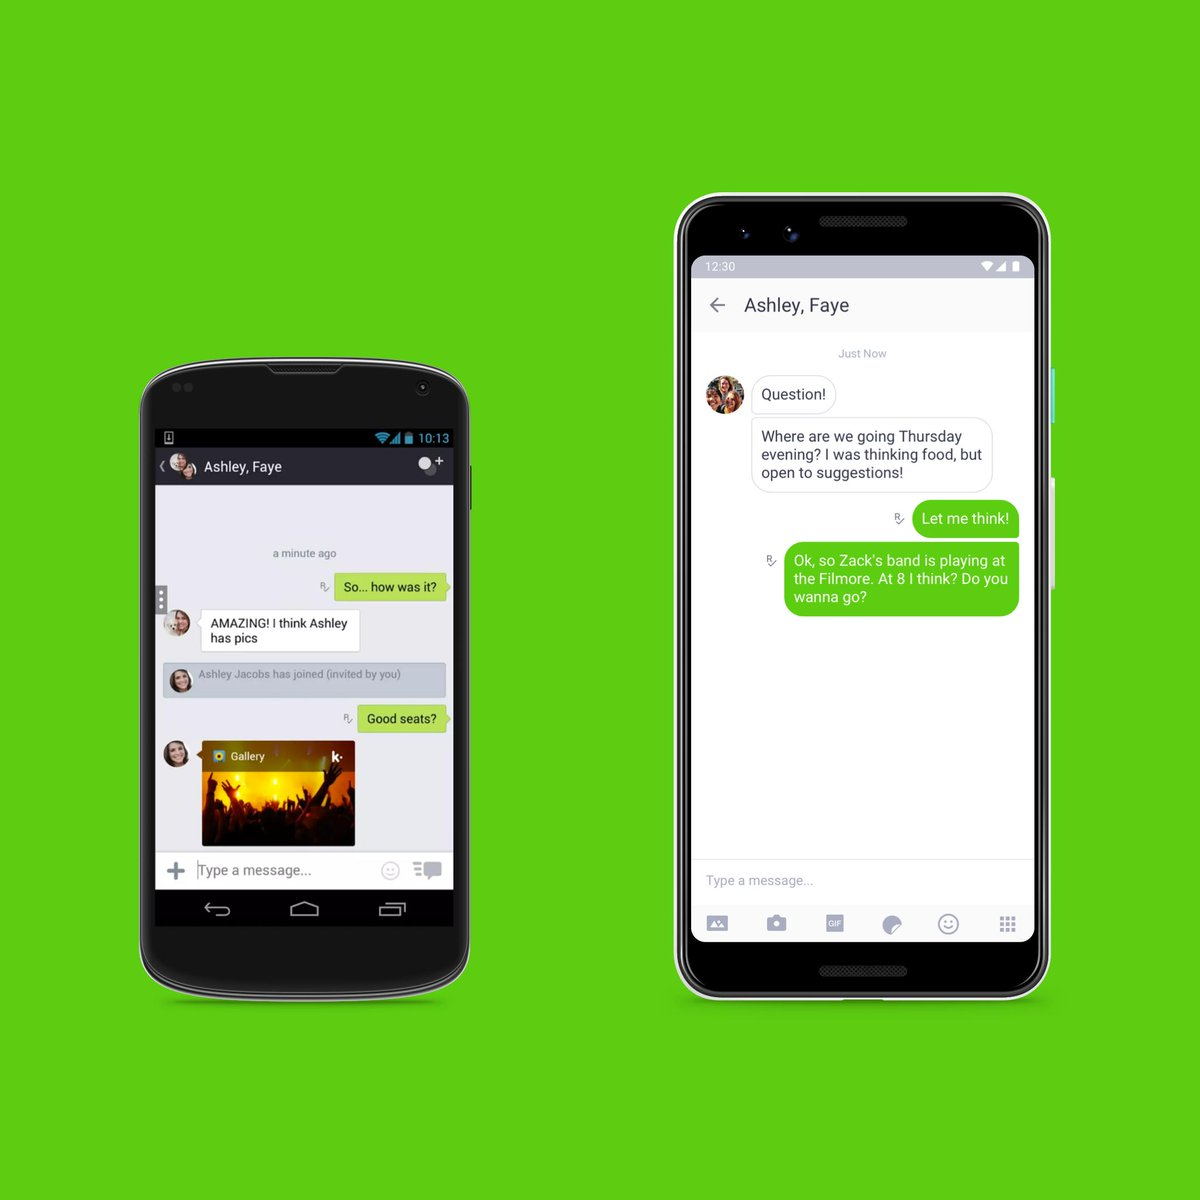 Kik is 10 this year! So tell us...who remembers the old Android and iOS chat screens? 😎 https://t.co/RxR7ENY2d1